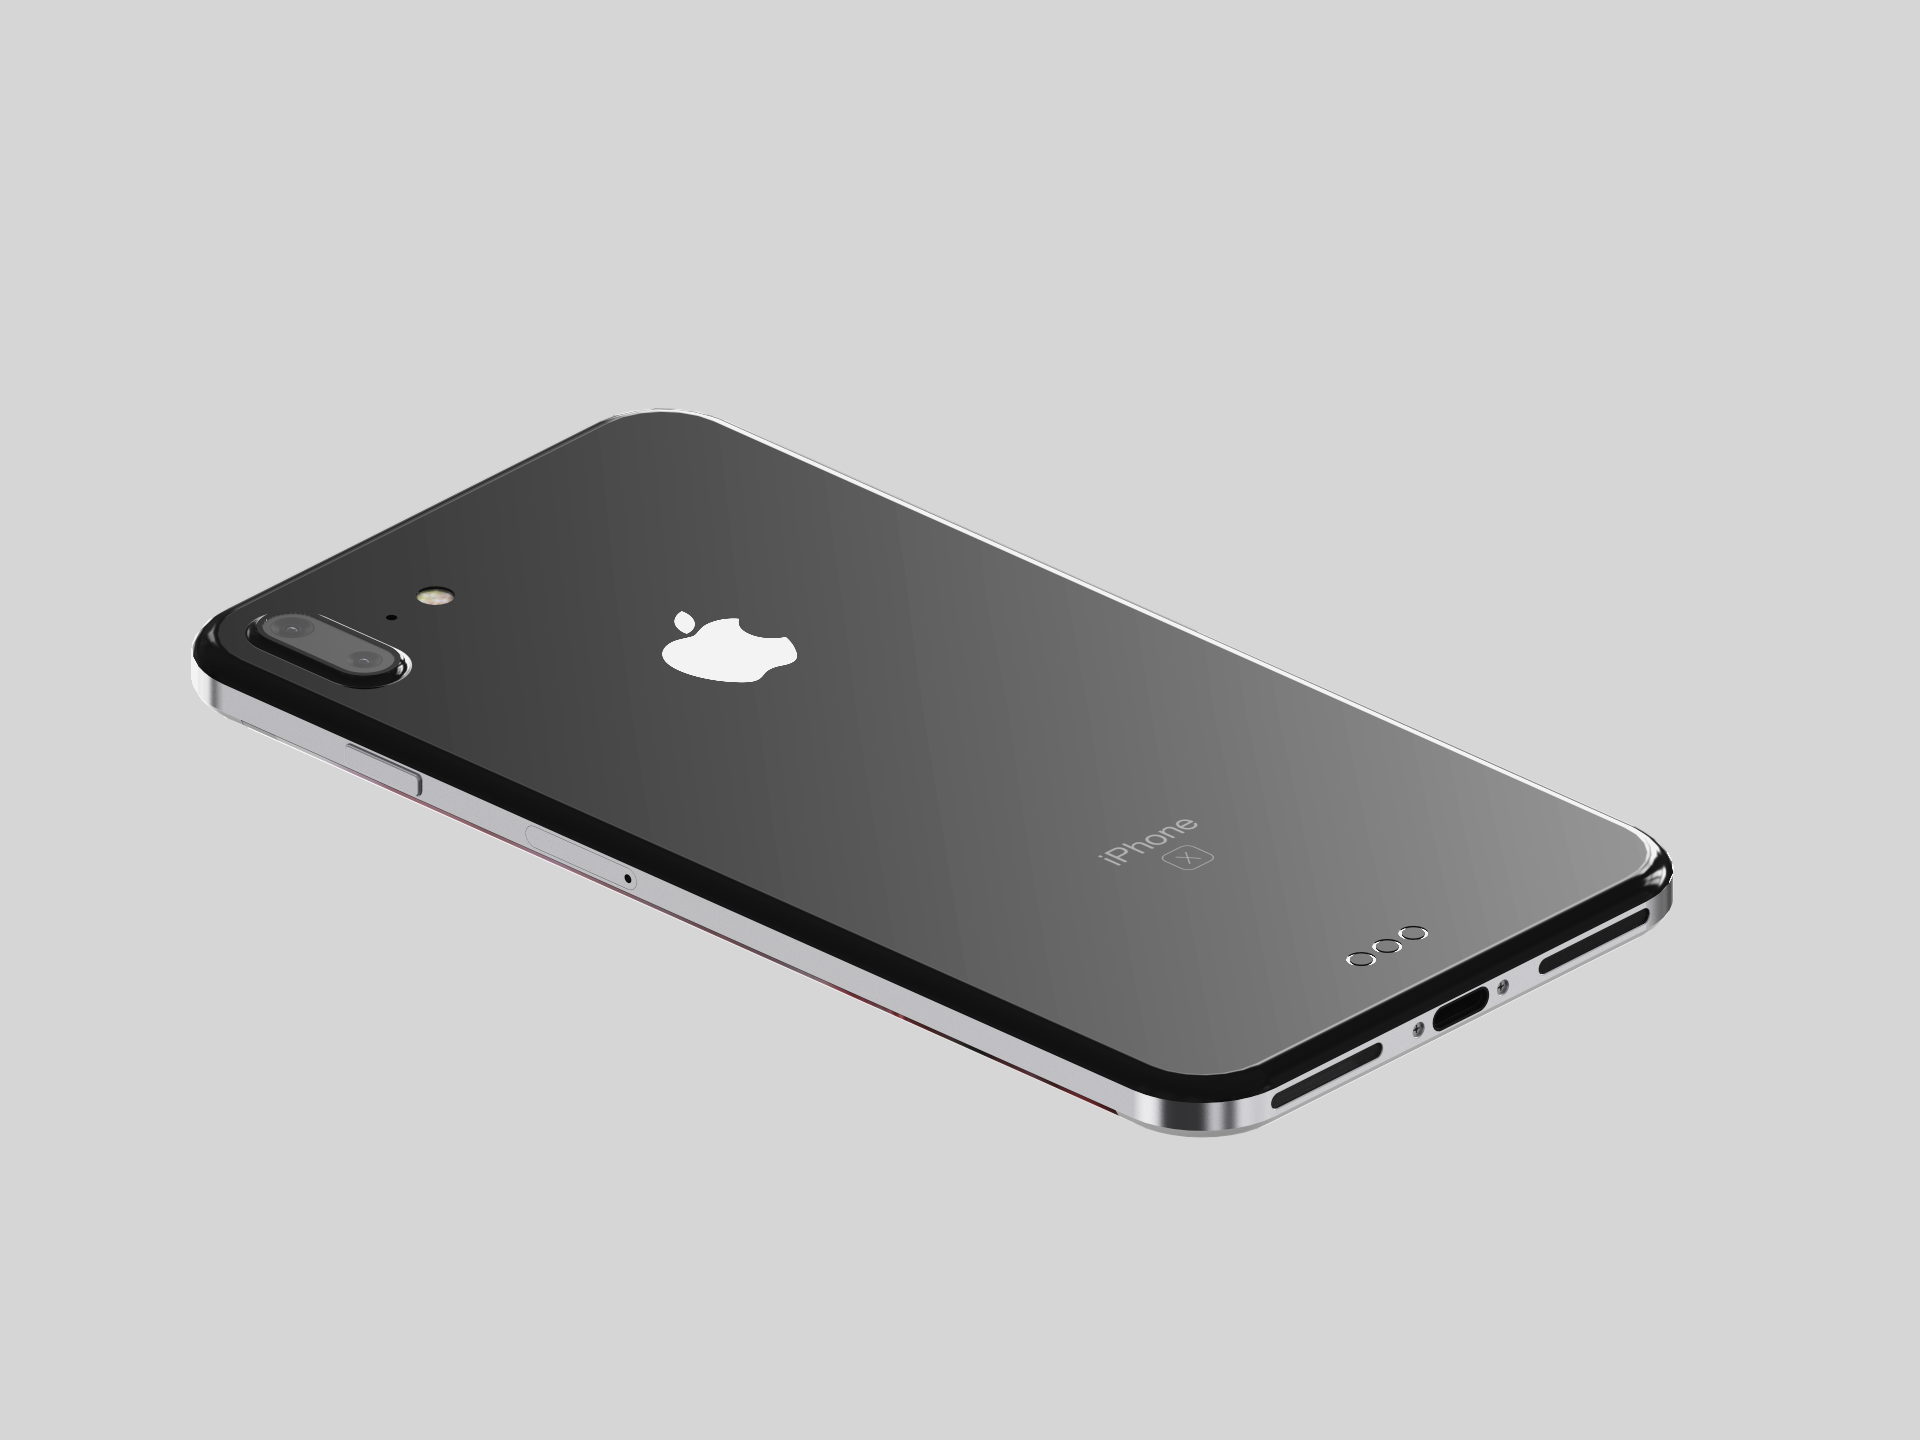 Designer Visualizes IPhone  With Steel Chassis And Glass Back - Designer home phones